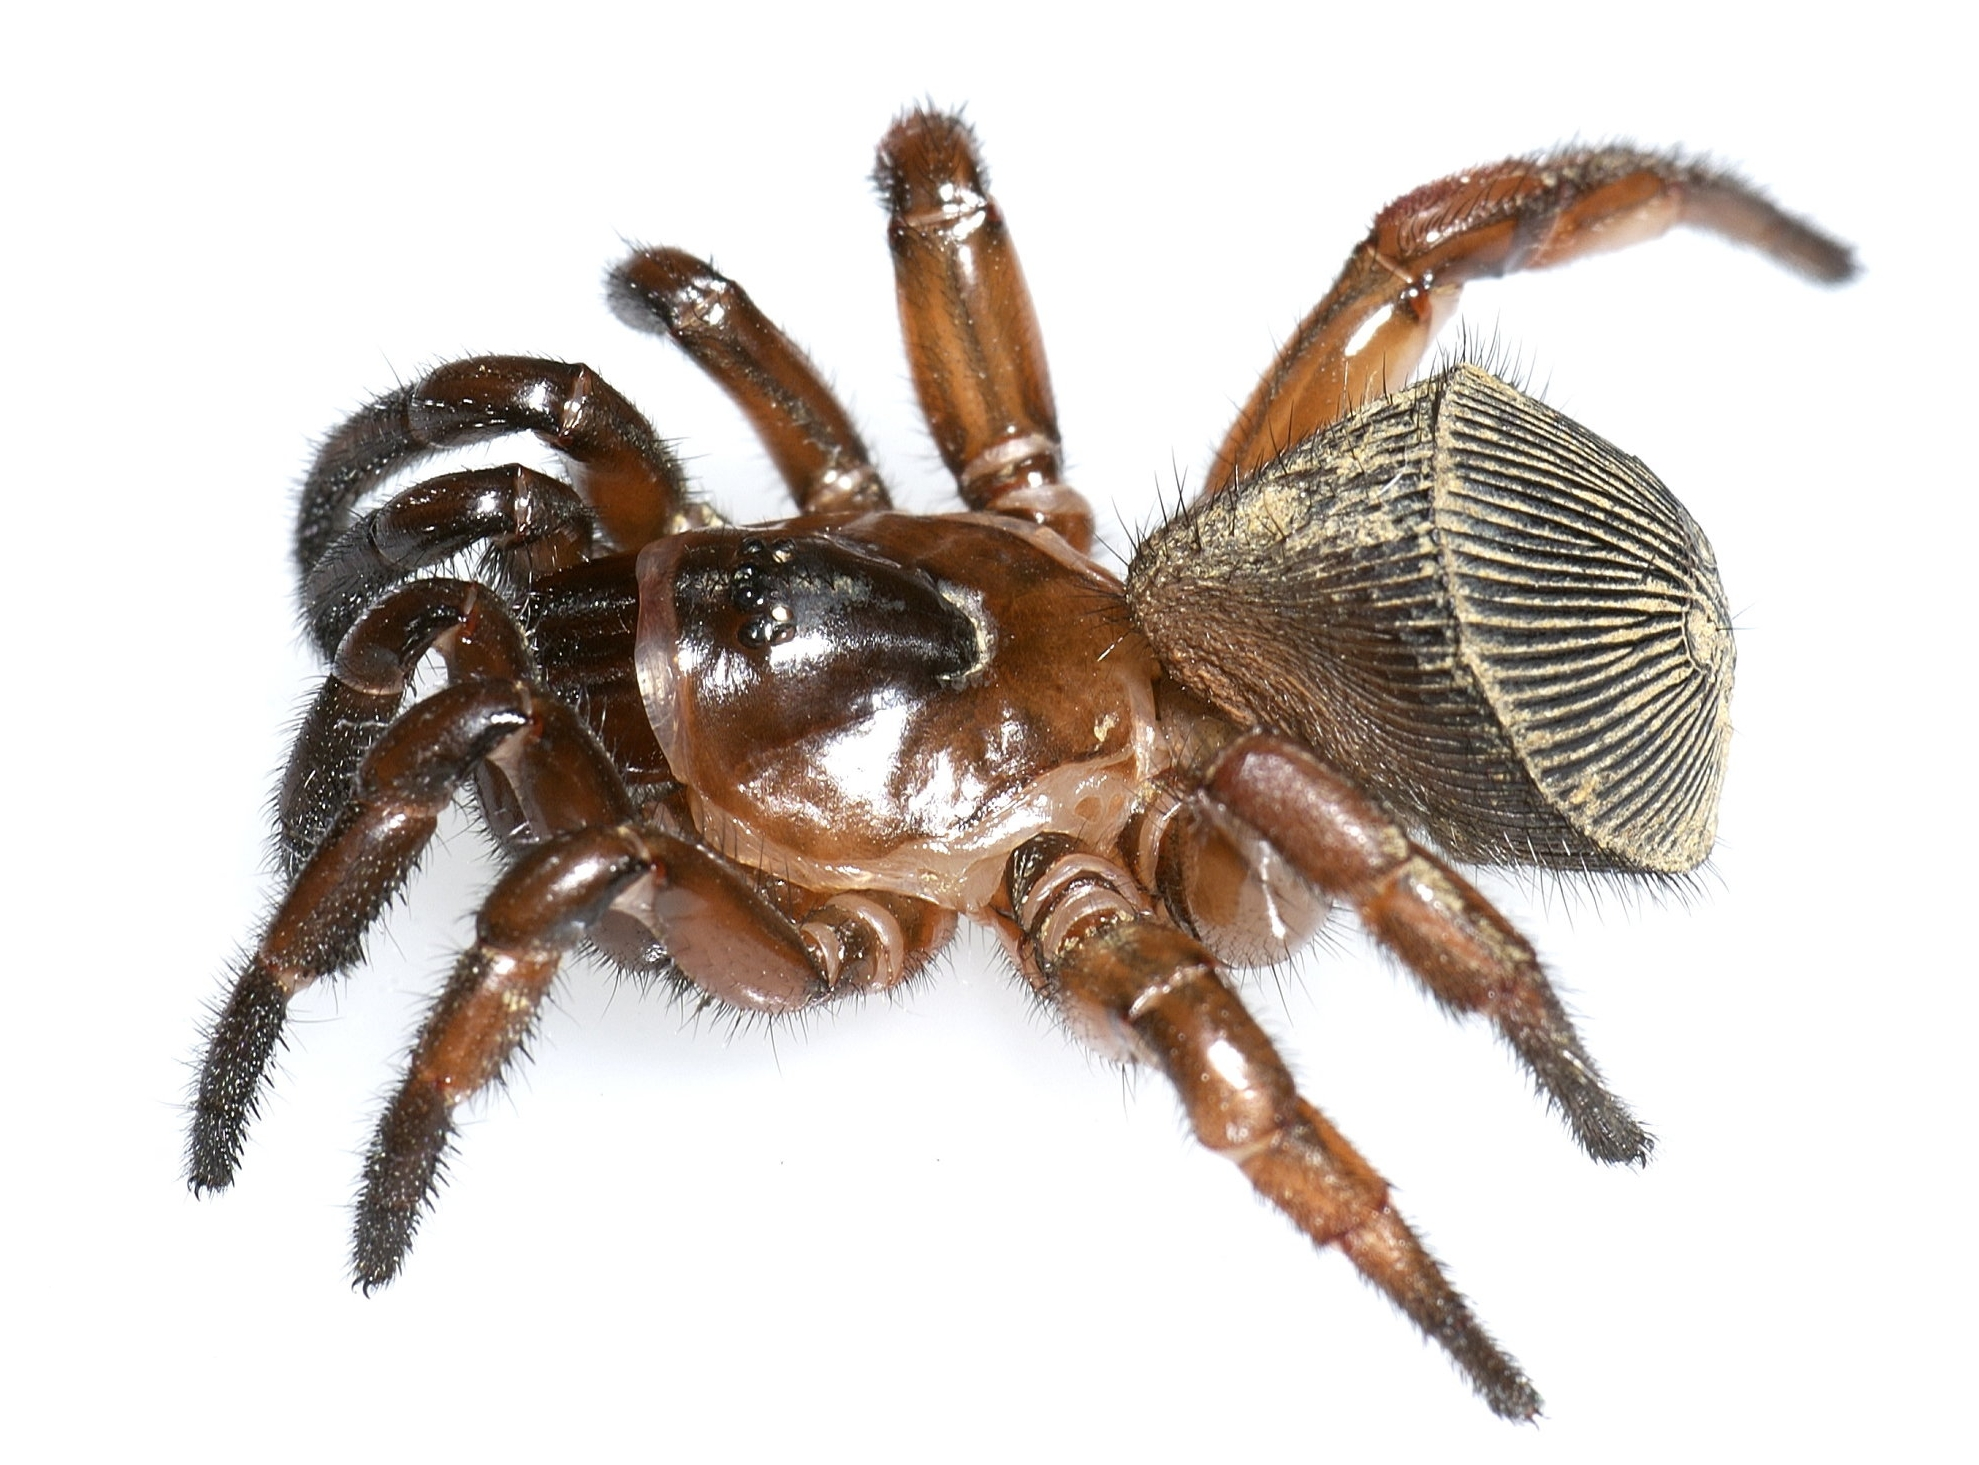 Chinese Hourglass Spider. ©Jason Bond. (See footnote 1 for more information.)